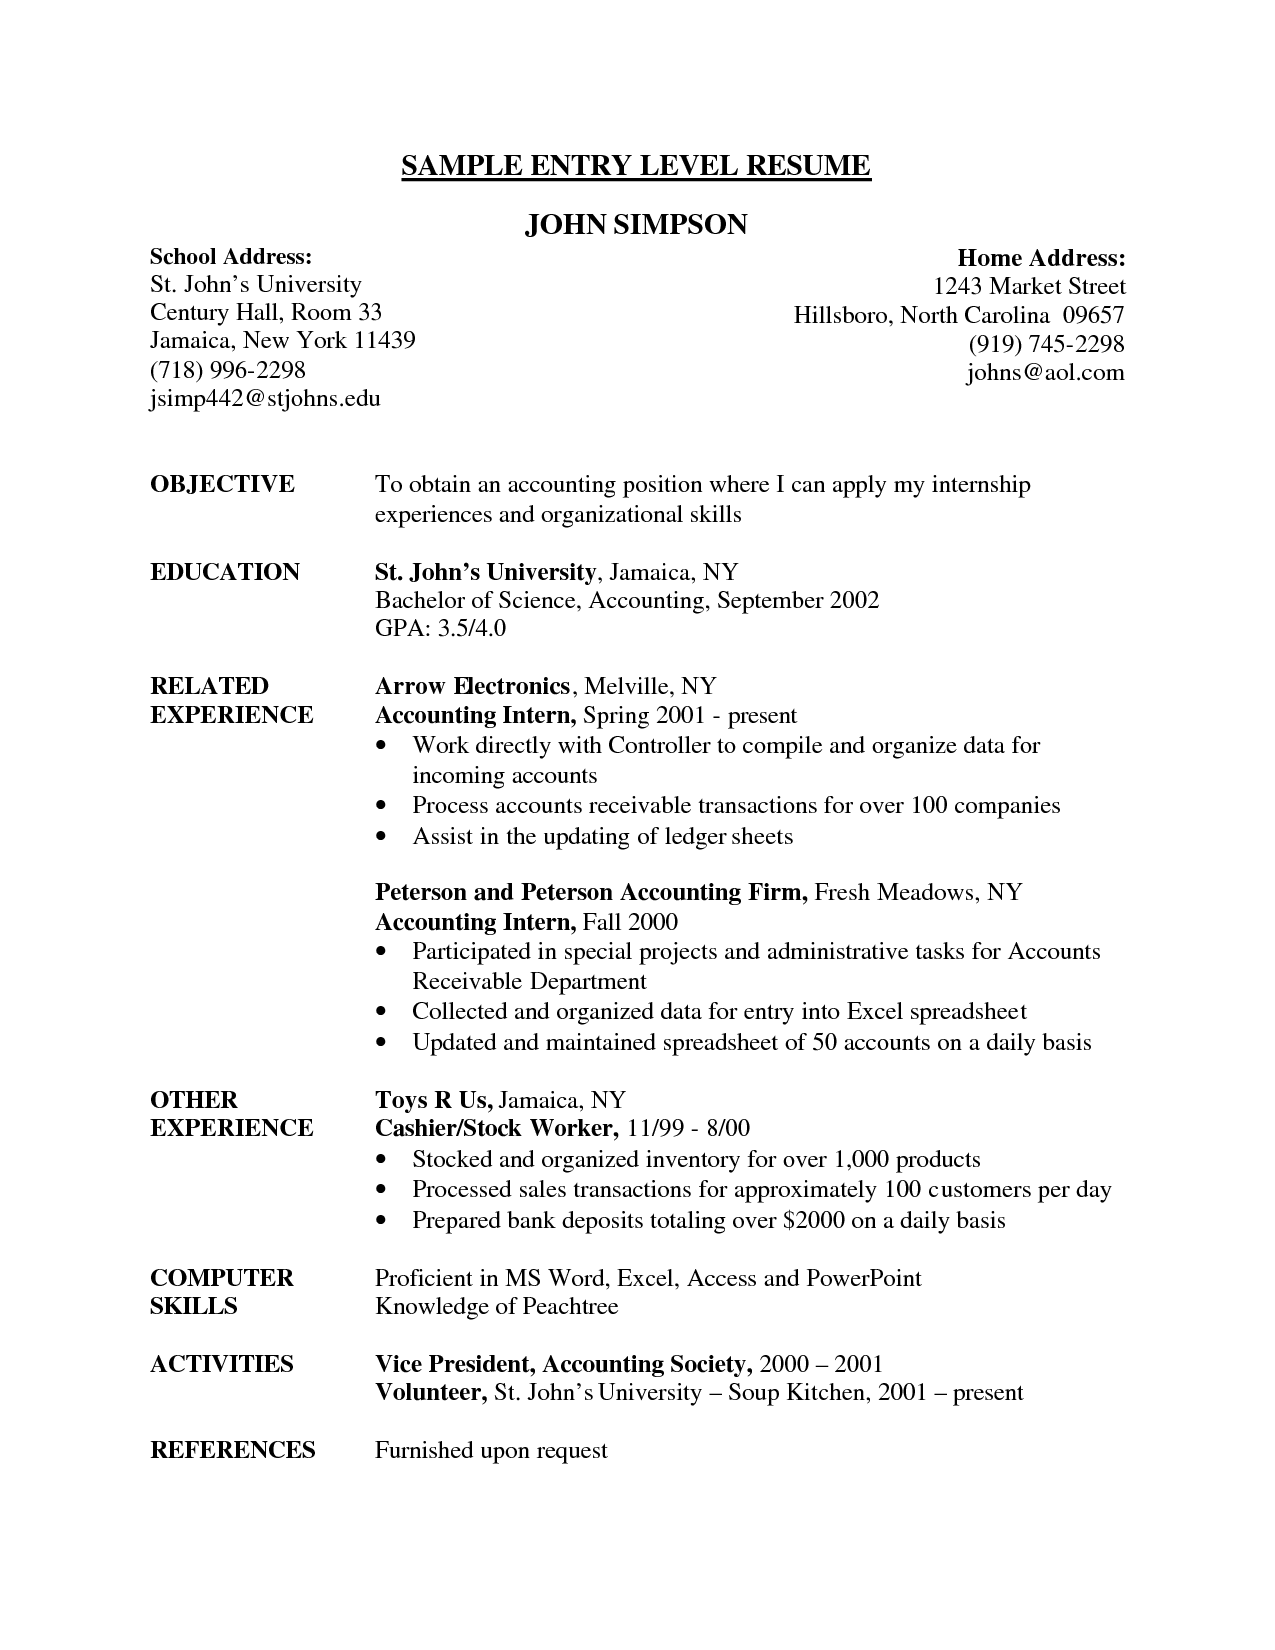 Example Of Resume Profile Entry Level   Http://www.resumecareer.info  Resume Overview Samples